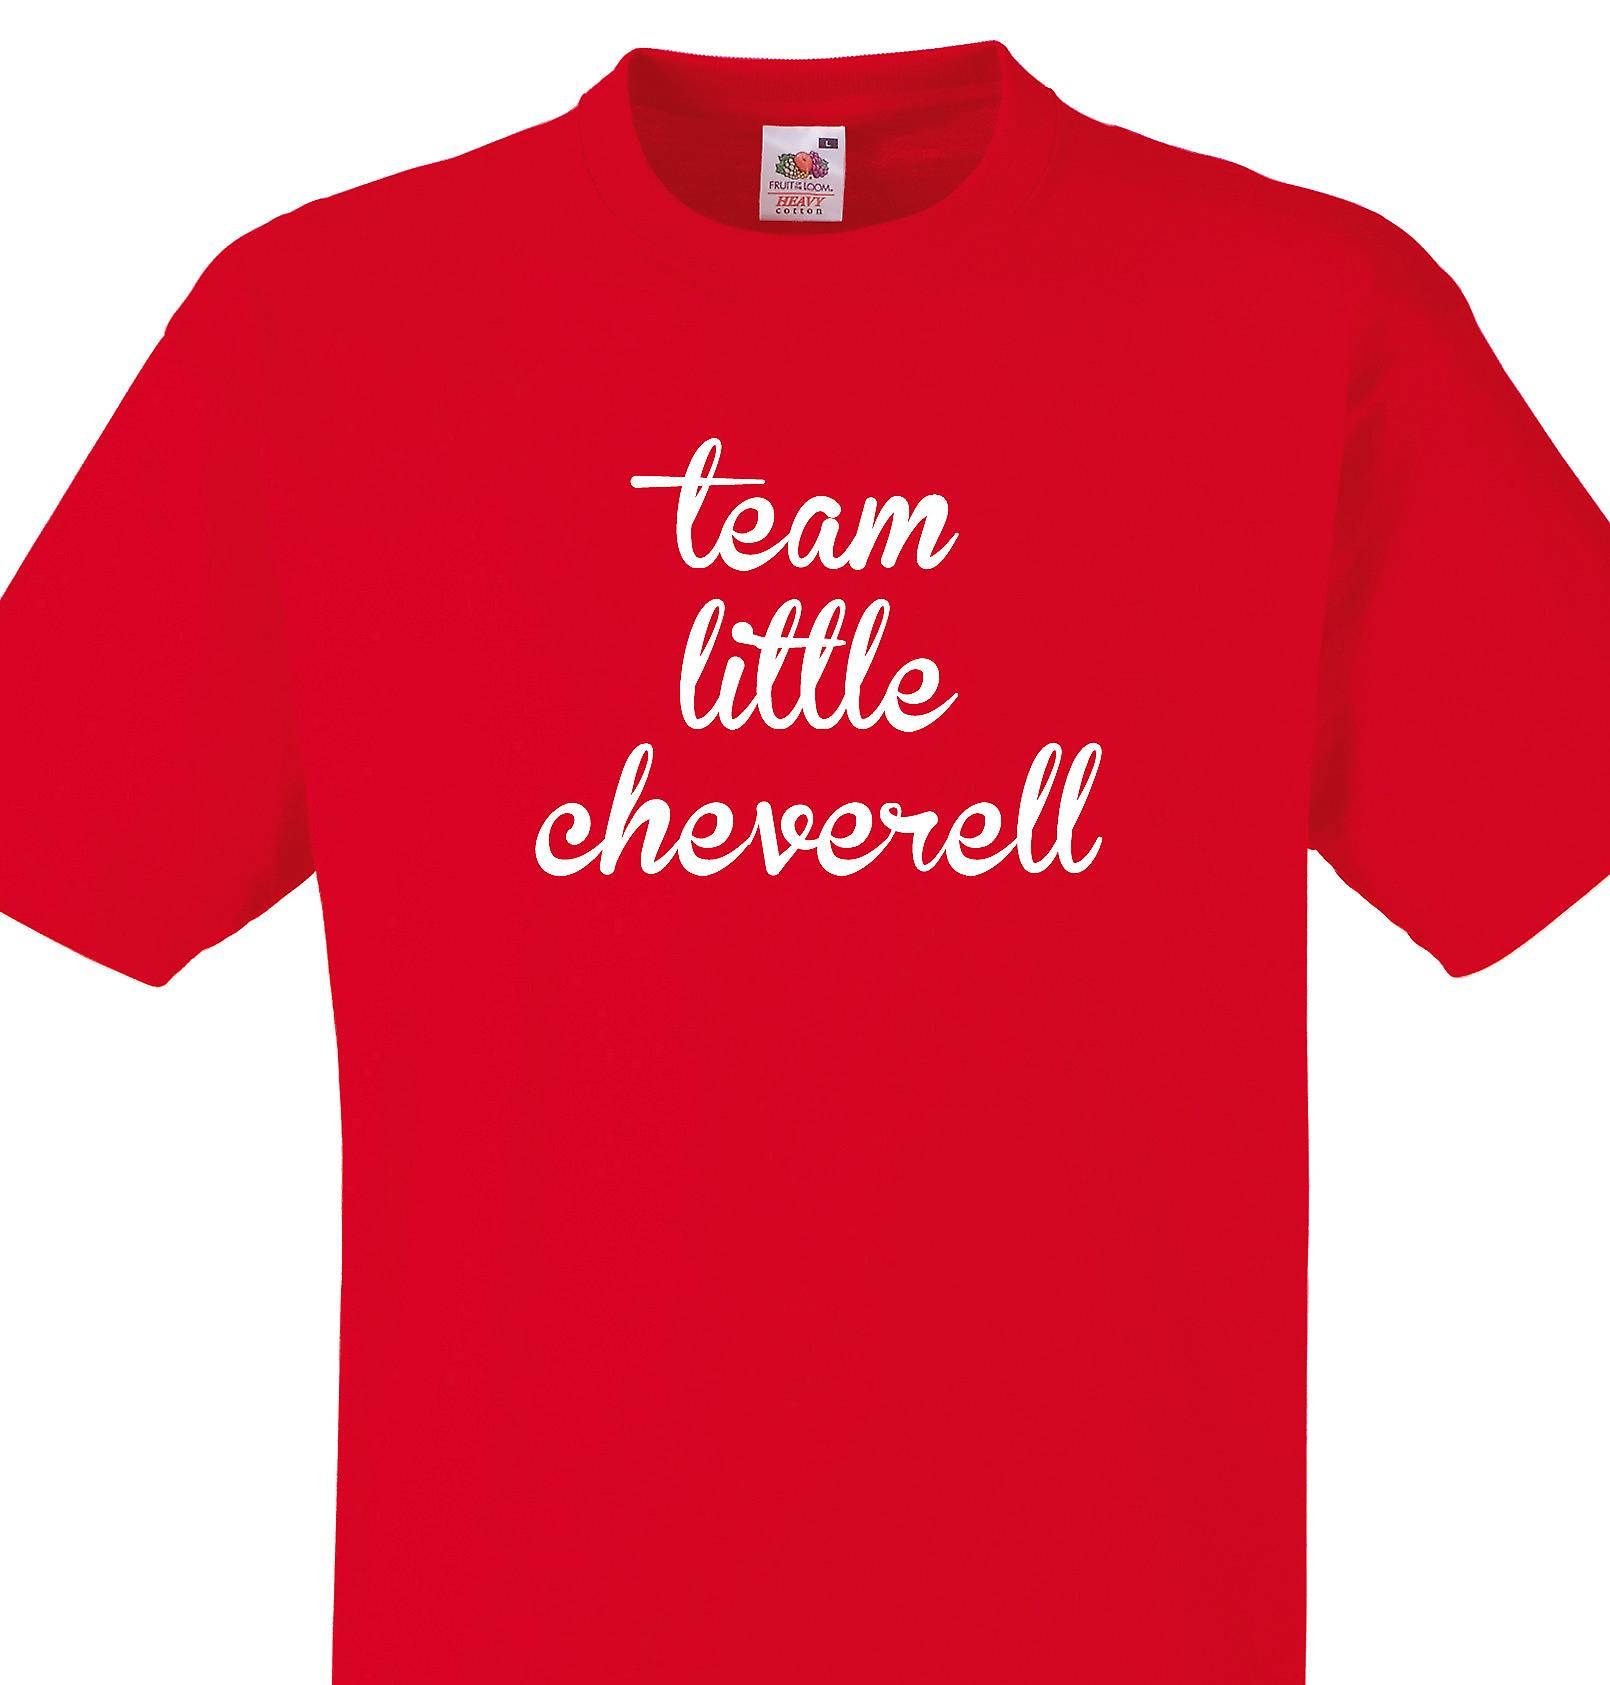 Team Little cheverell Red T shirt